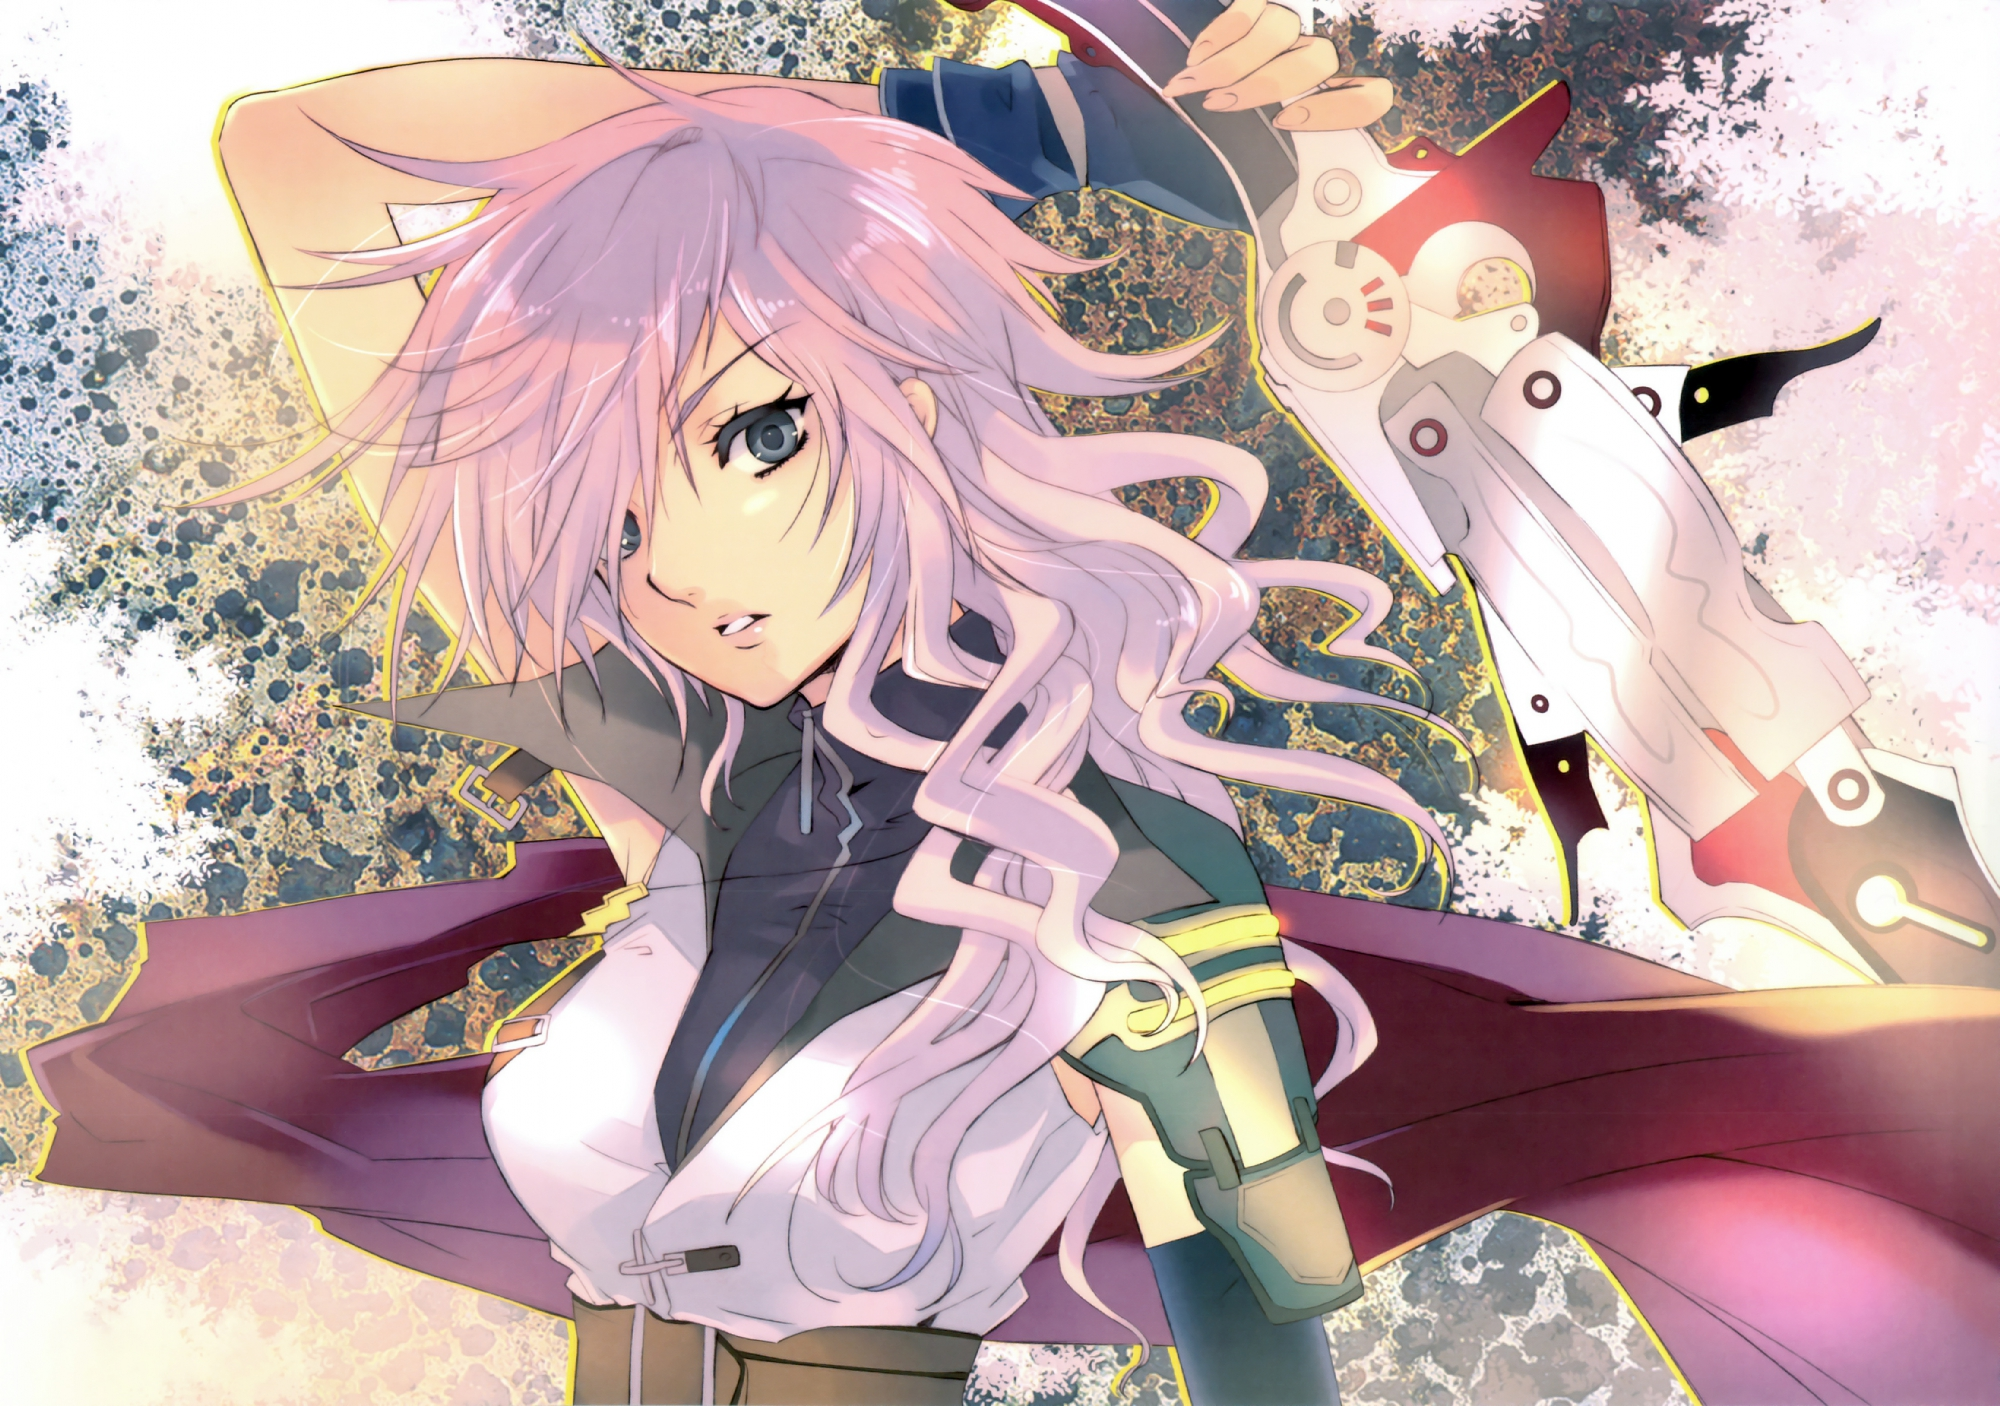 Anime girl with pink hair and a sword